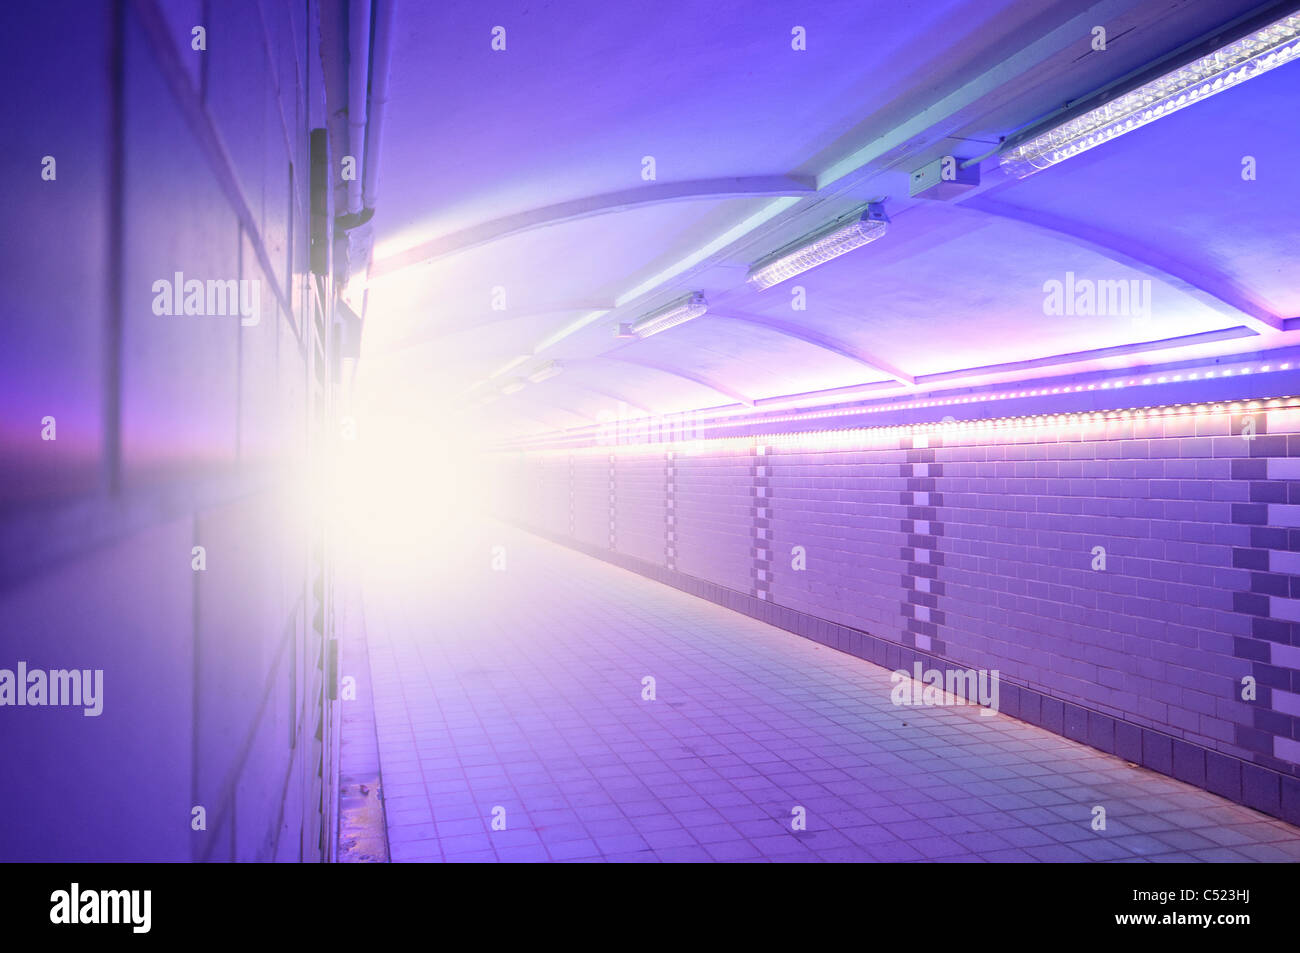 Symbolic image, the light at the end of the tunnel - Stock Image